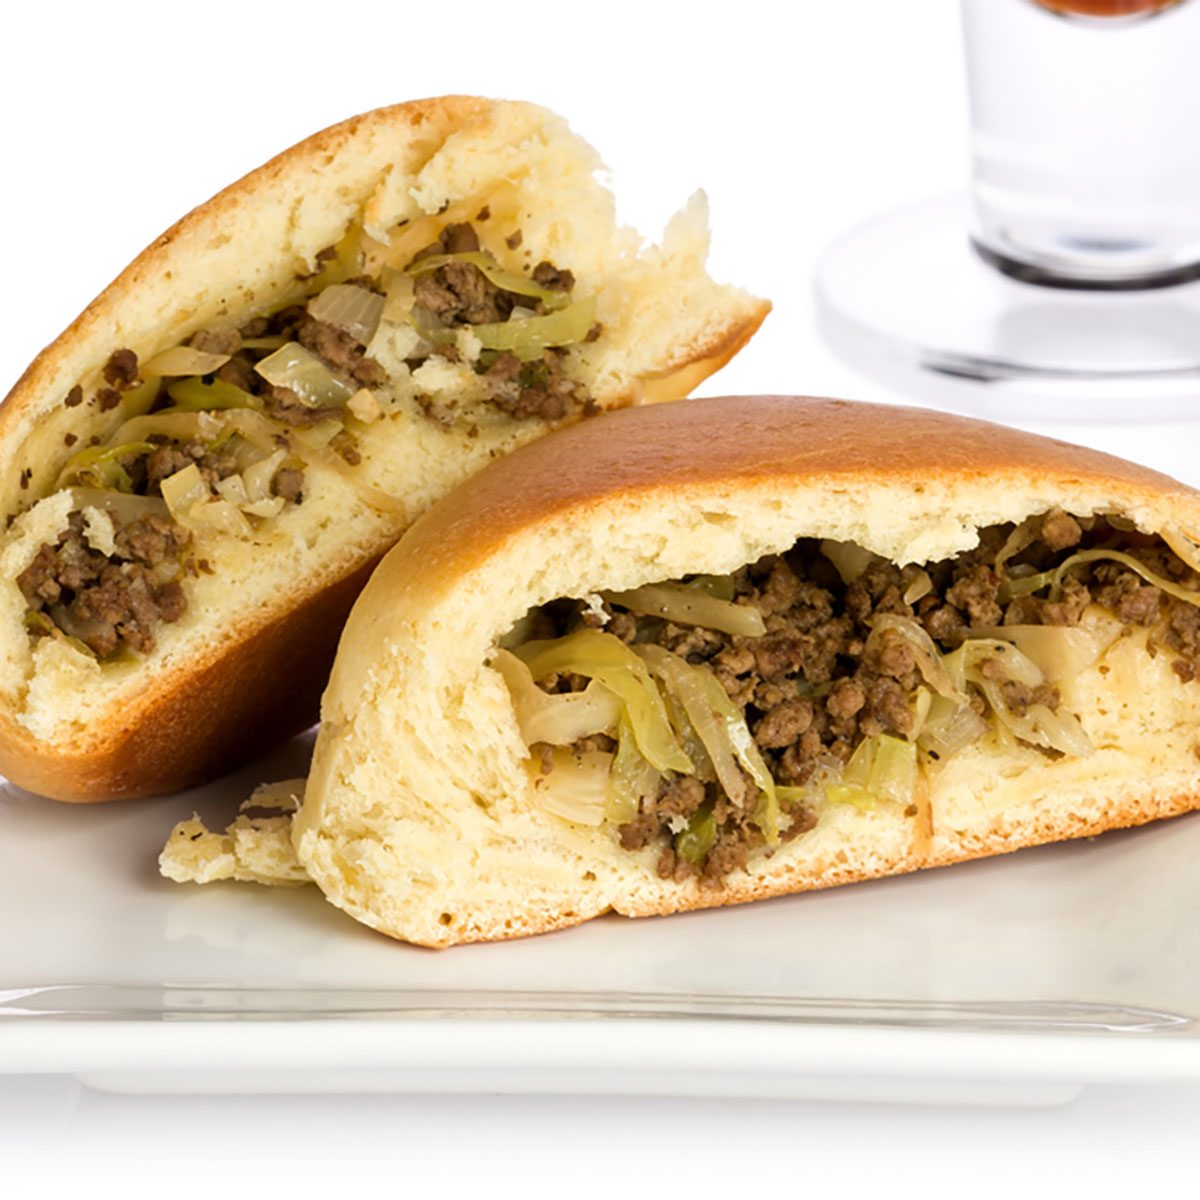 Single sliced bierock with seasoned ground beef, cabbage, and onion filling on a small plate